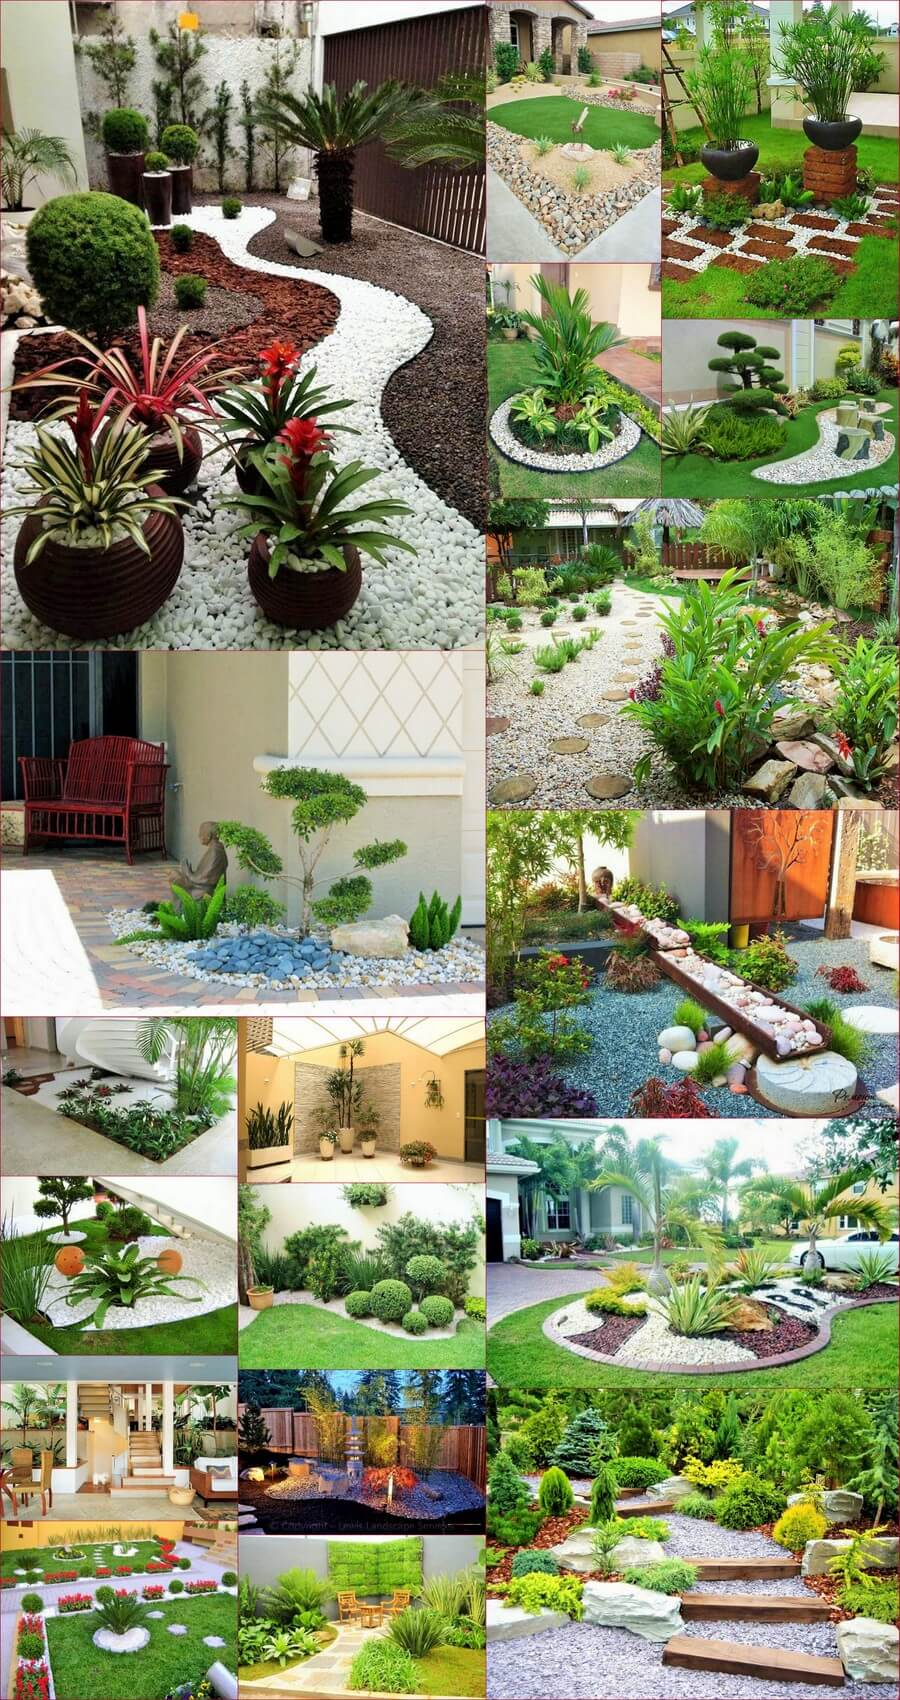 Decorate Your Small Garden Perfectly - 1001 Motive Ideas